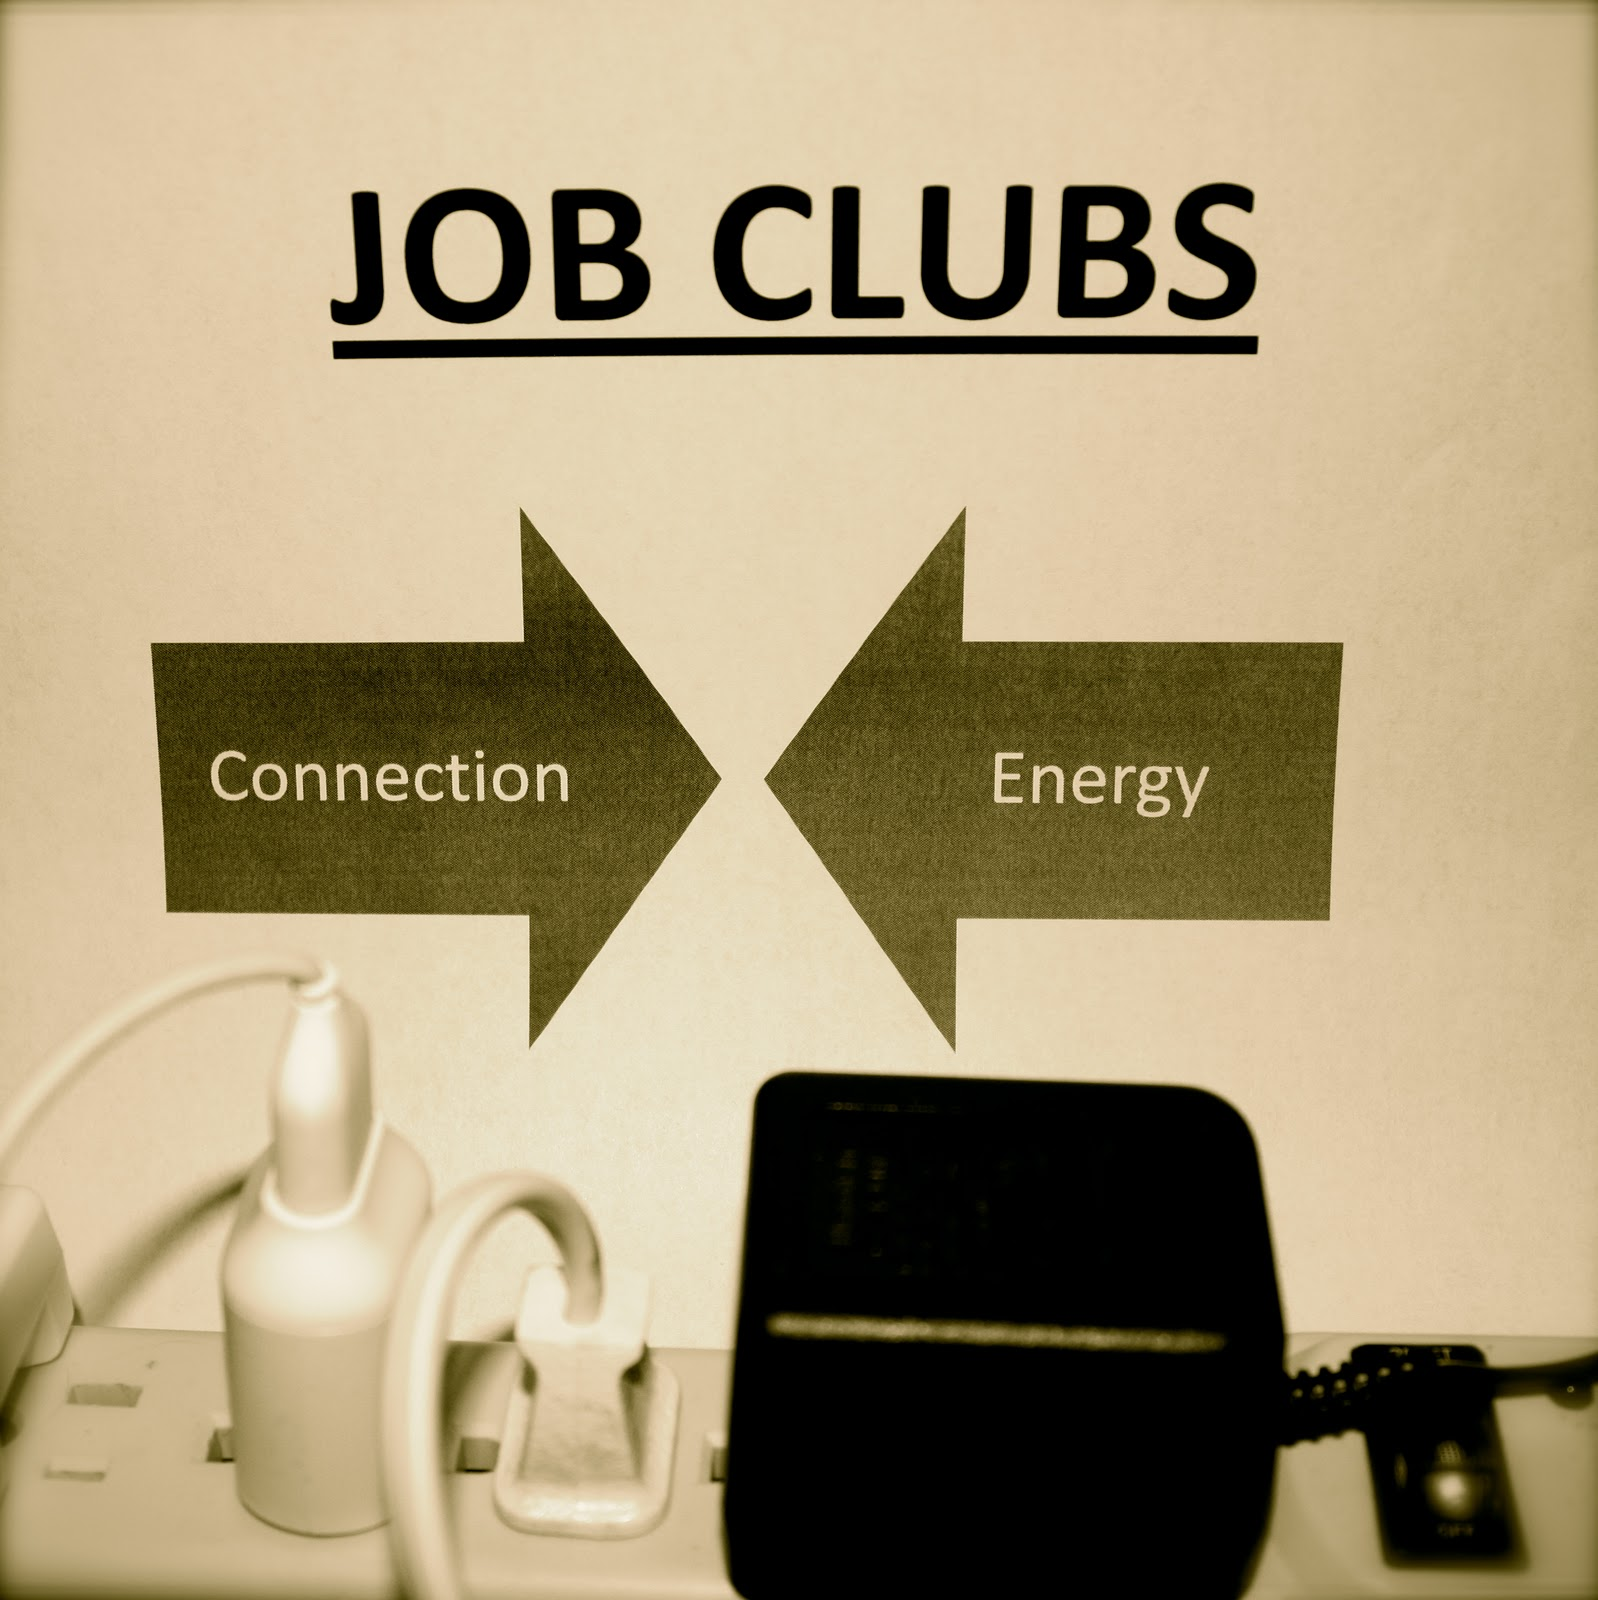 master career counselor 2012 if you want your job search to surge success then a job club now it is the convergence of energy and connection